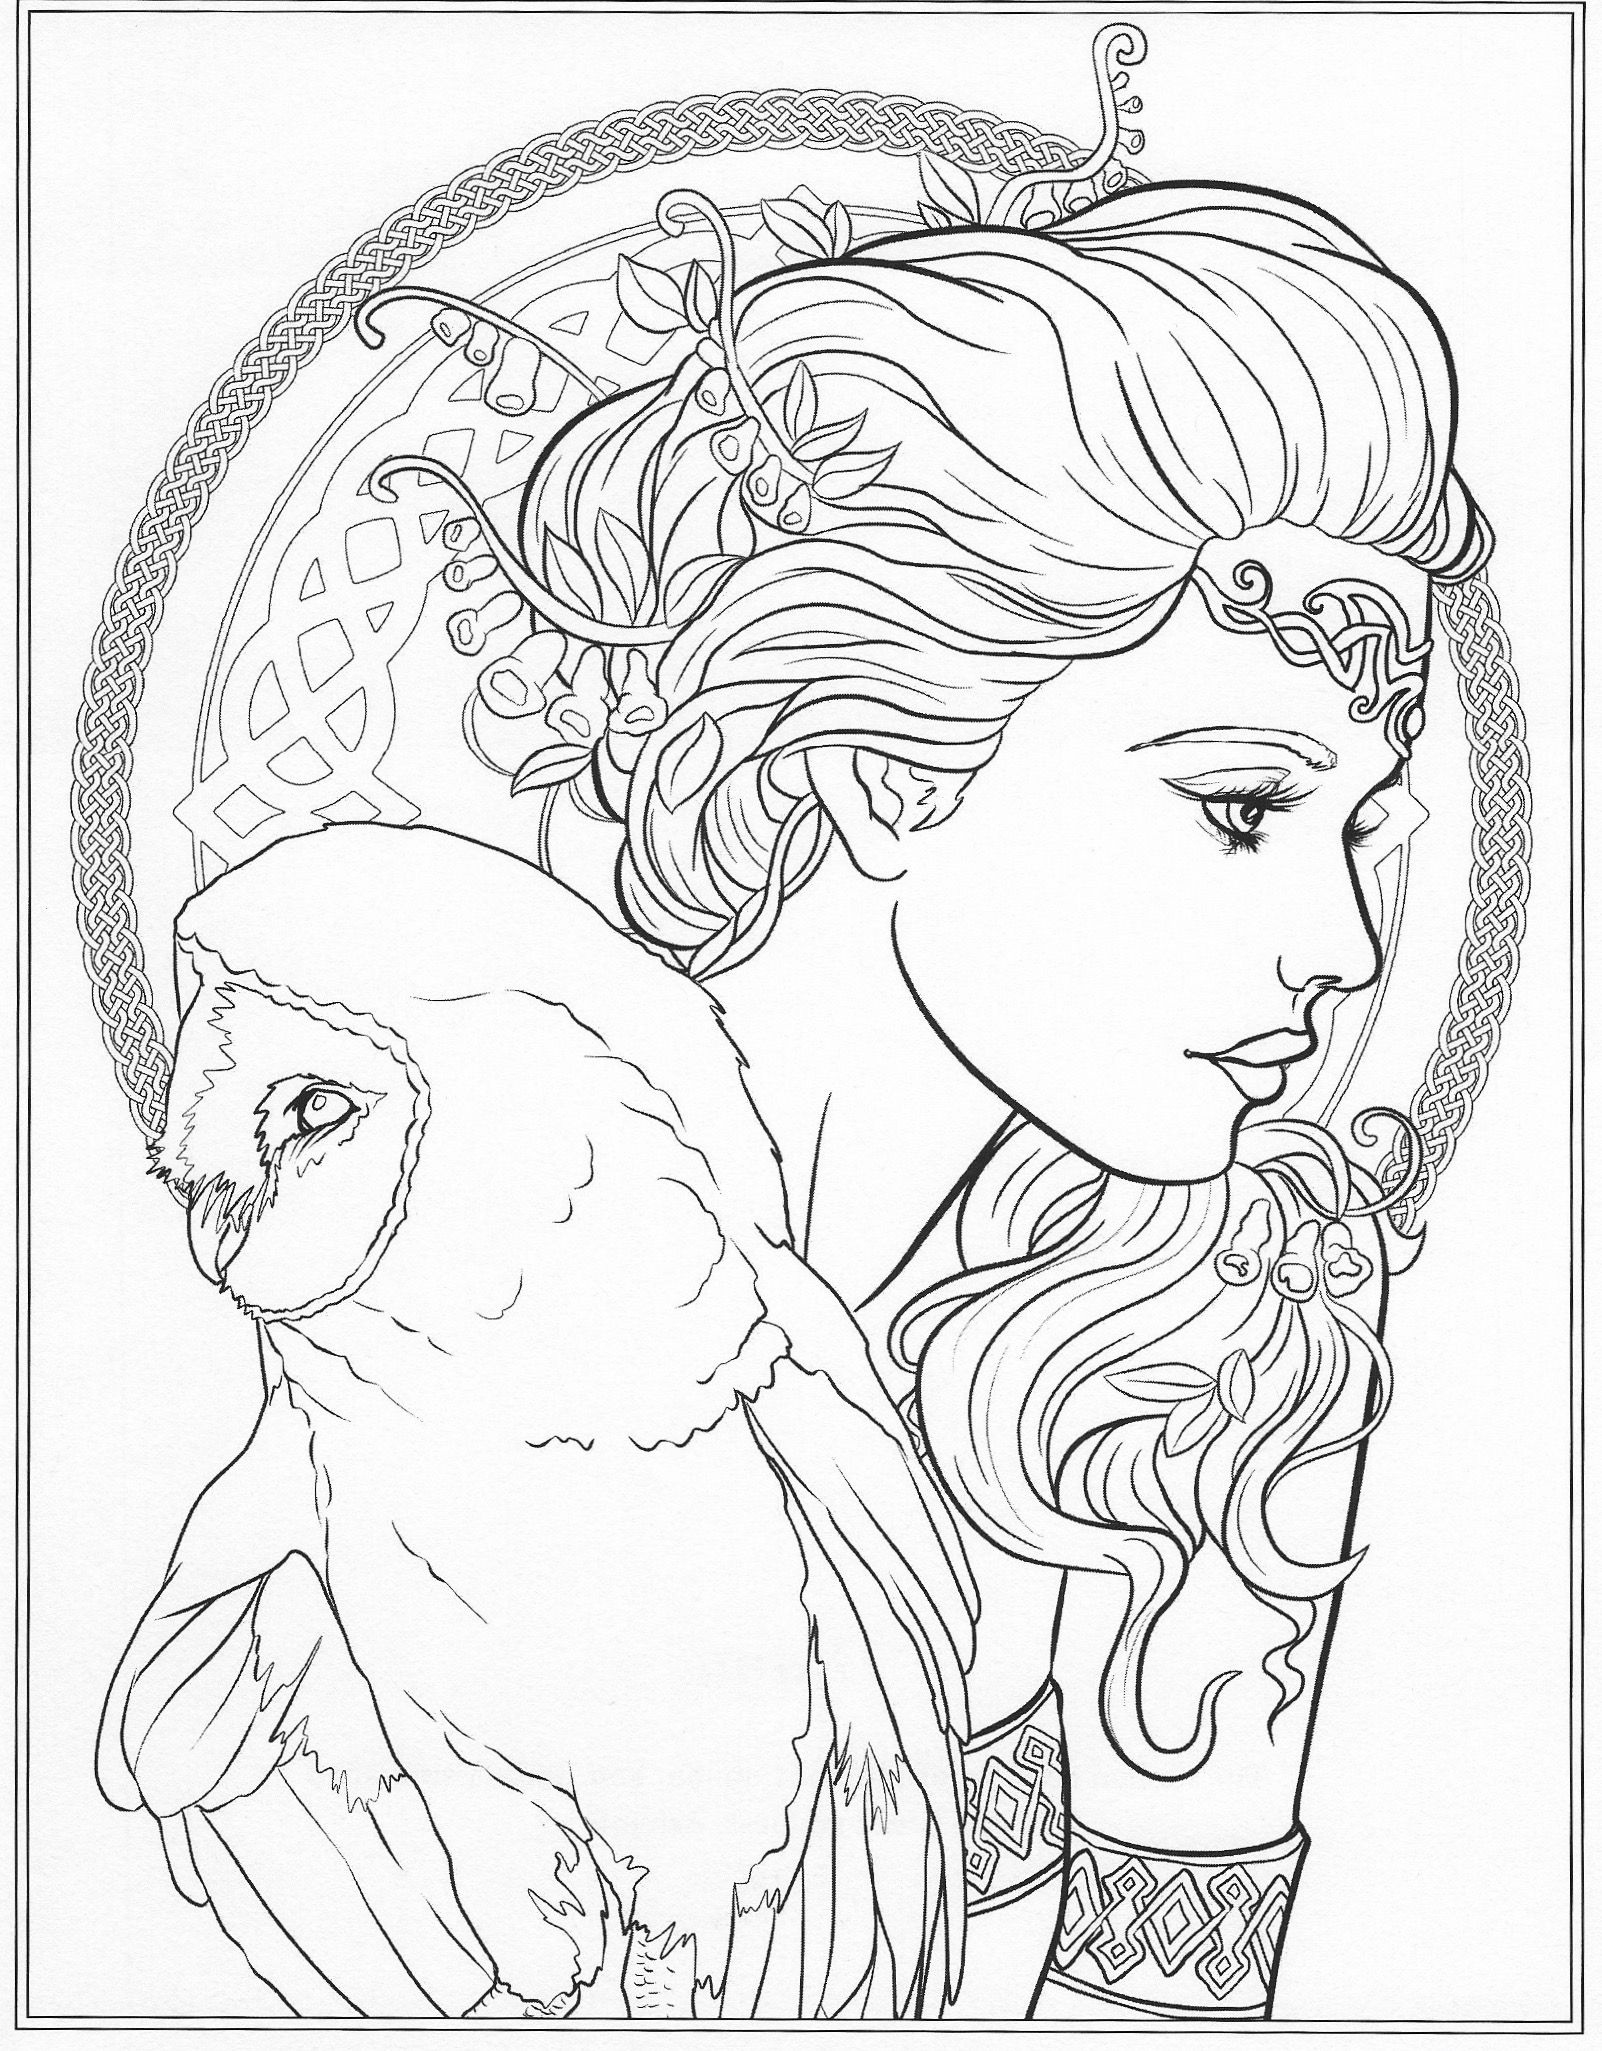 Pin by Mara Purdy on Coloring pages Pinterest Coloring